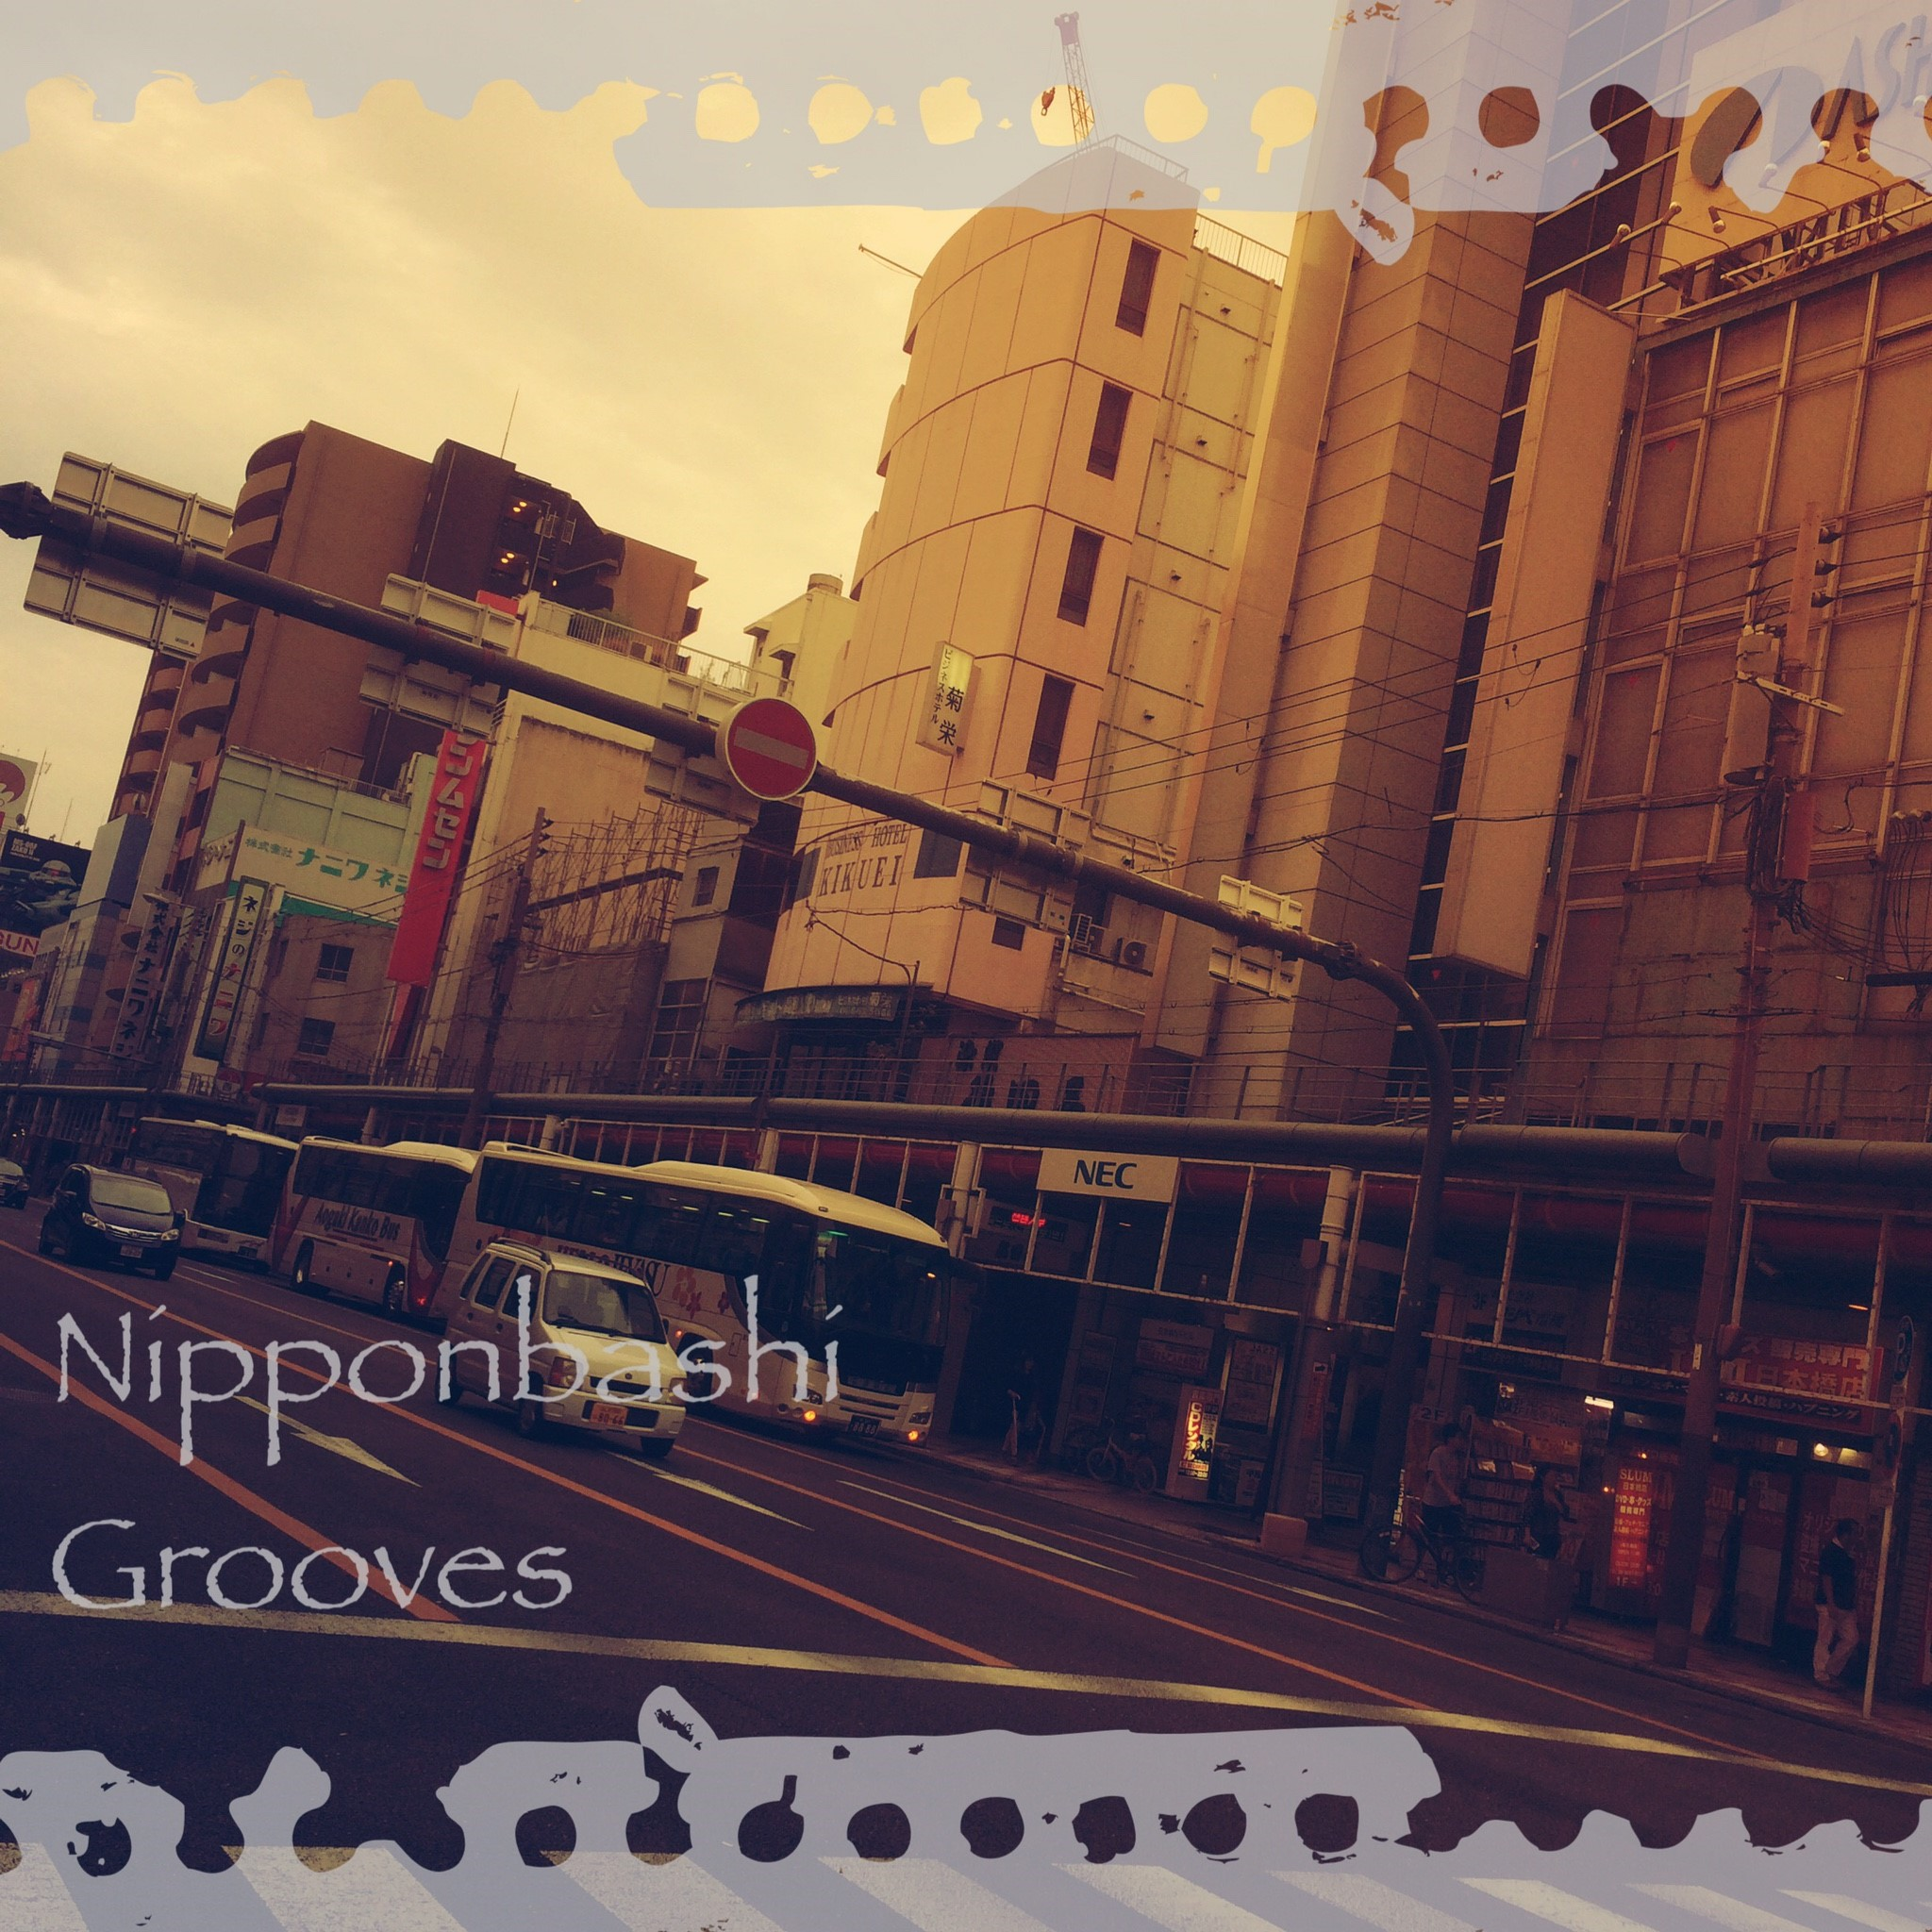 Nipponbashi Grooves